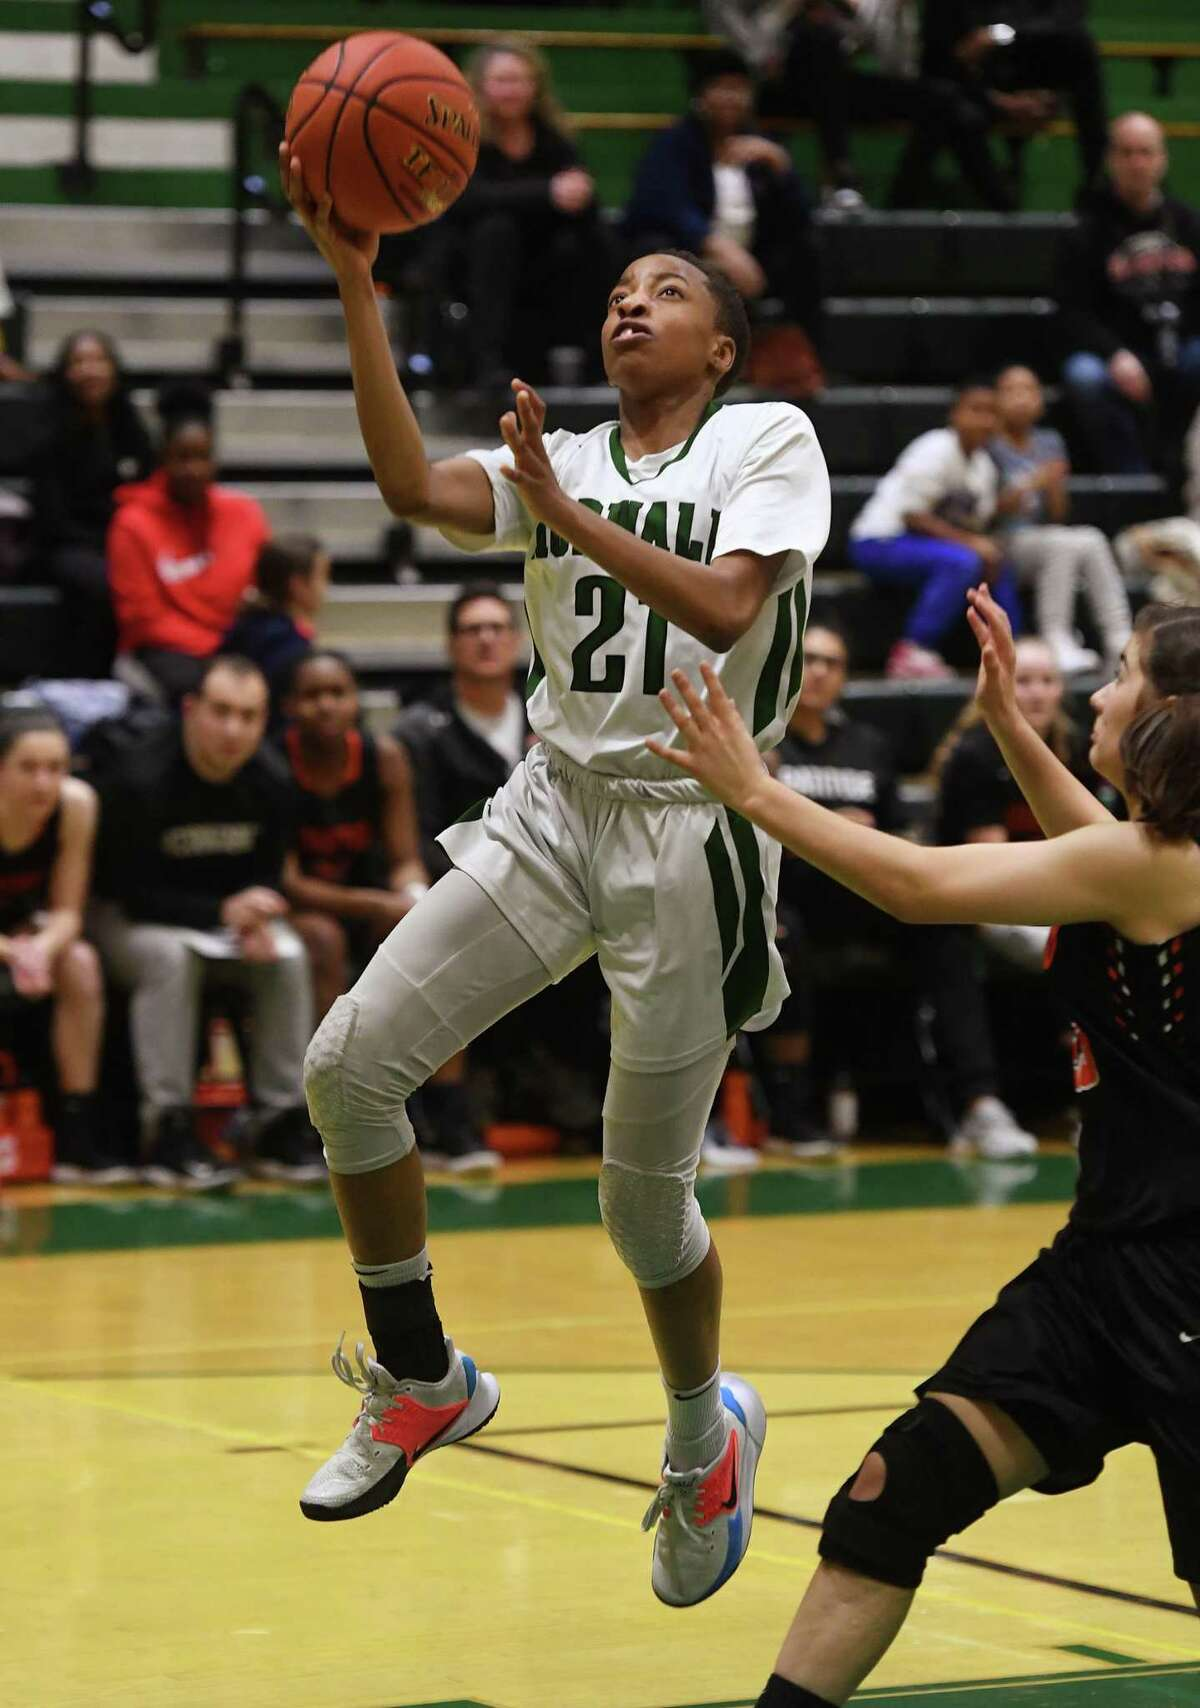 Norwalk's Jakara Murray-Leach drives for a fast break basket during the first half of her team's victory over Stamford at Norwalk High School in Norwalk, Conn. on Monday, February10, 2020.